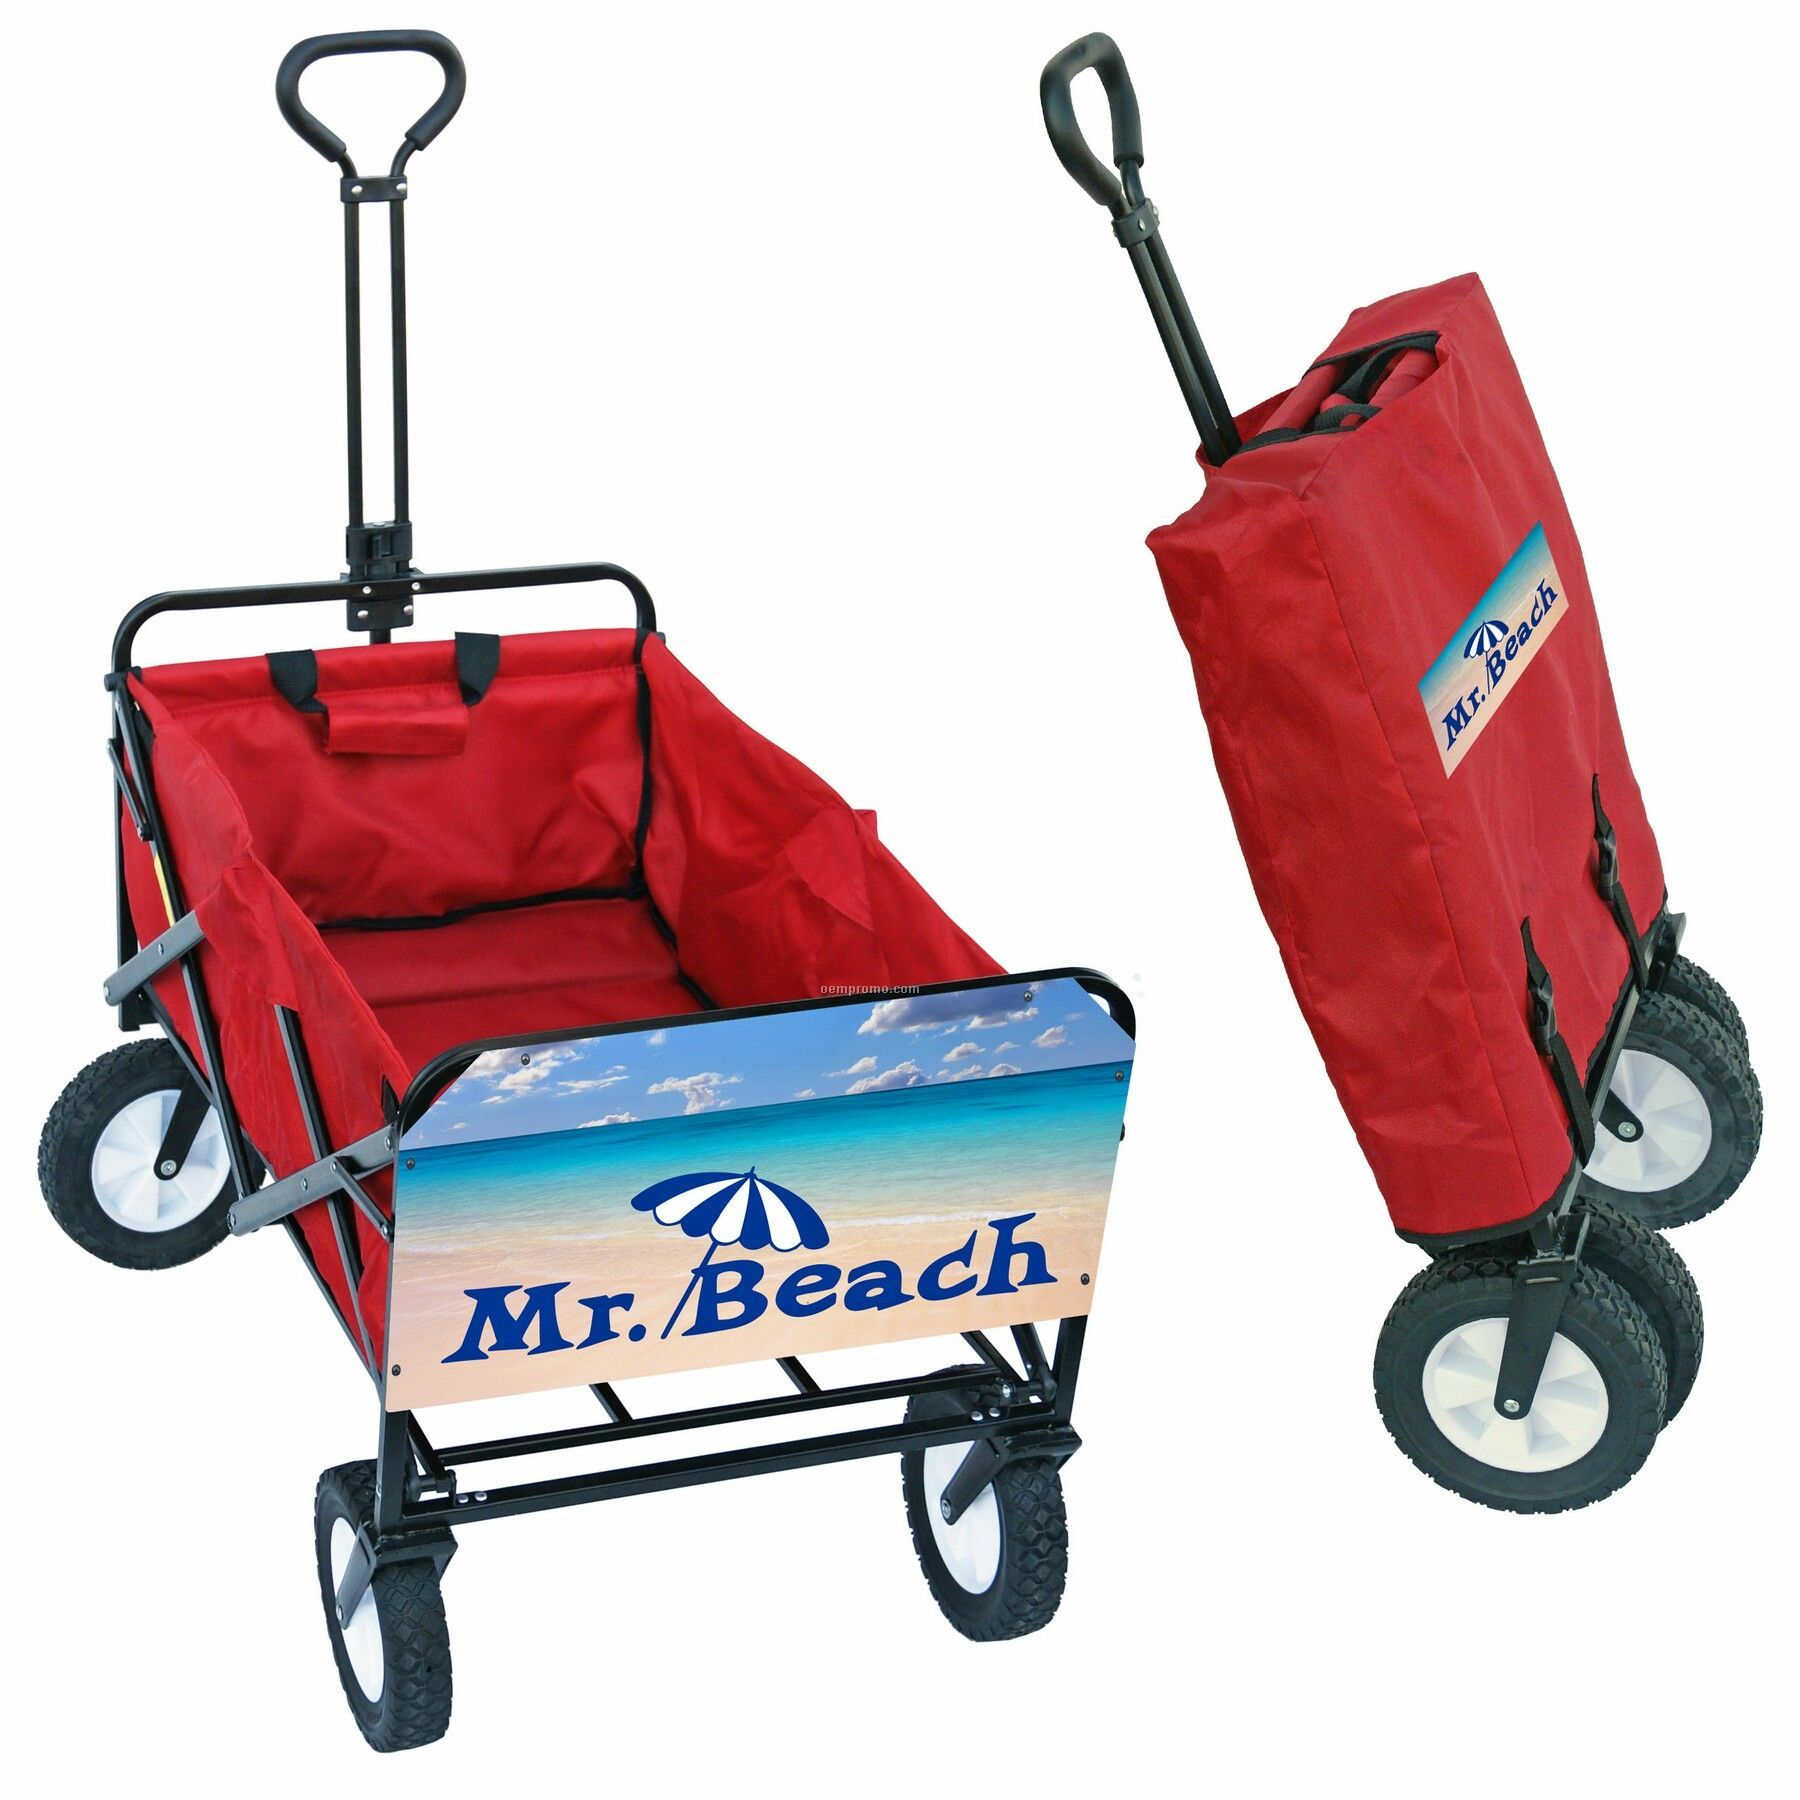 Collapsible Folding Utility Wagon W/ Large Rear Imprint Panel